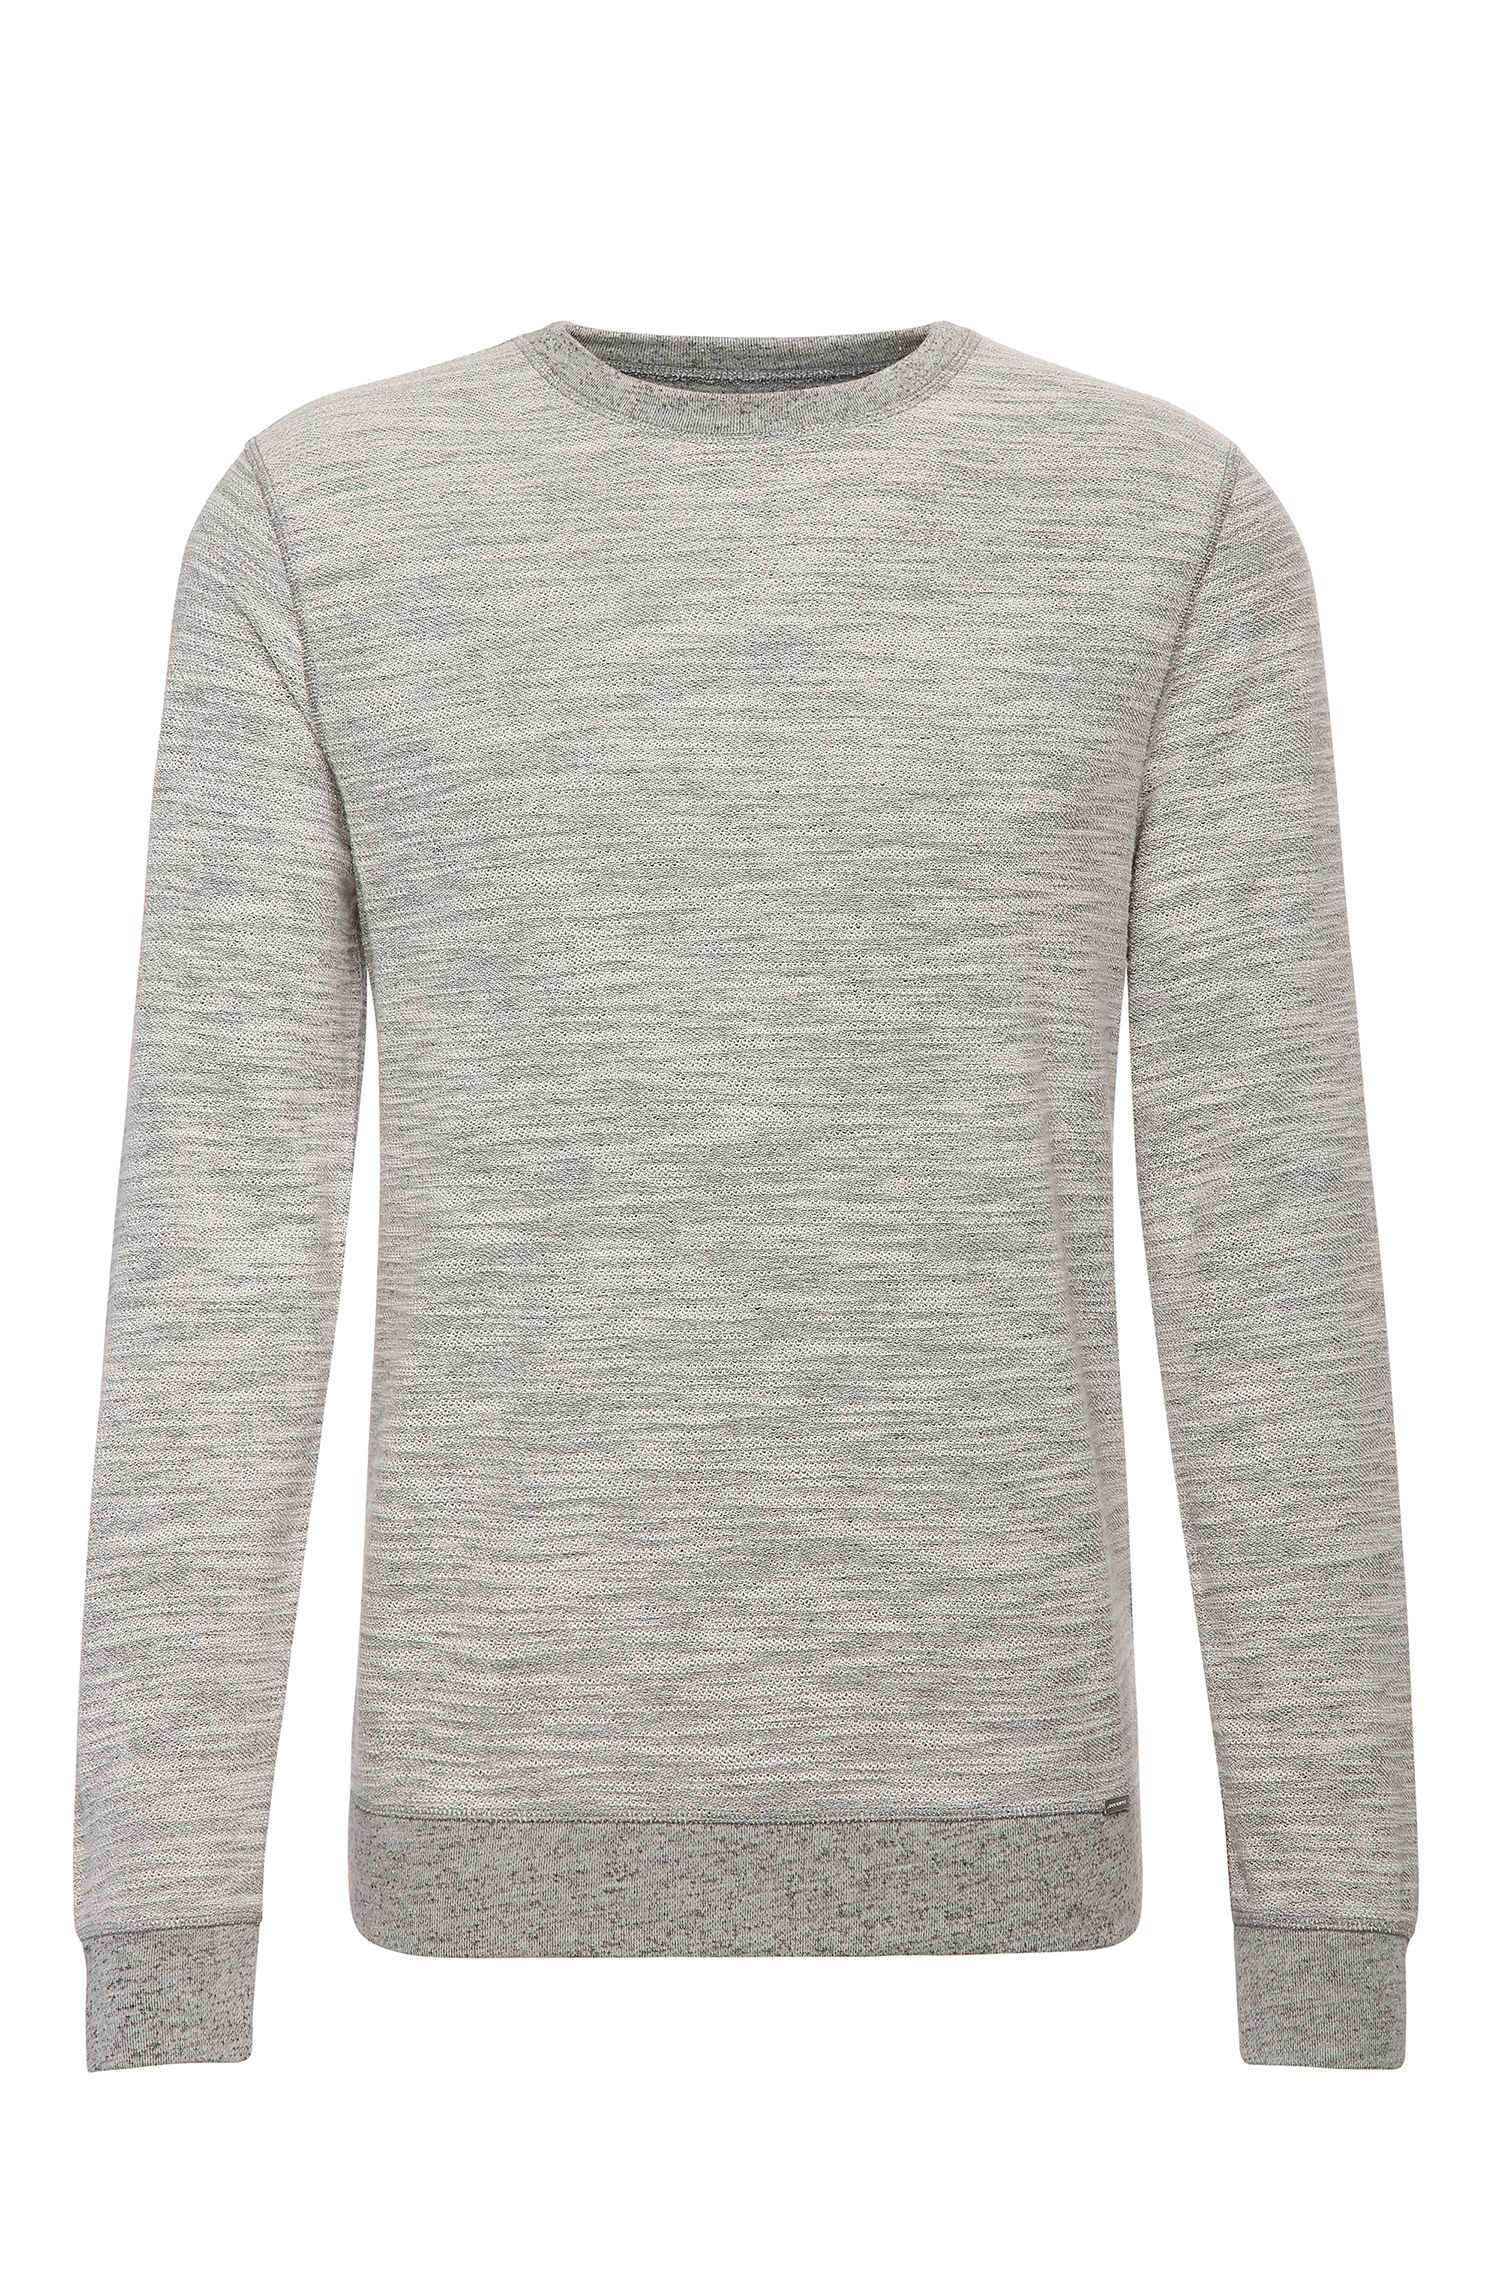 Relaxed-fit sweatshirt in cotton blend: 'Woice'